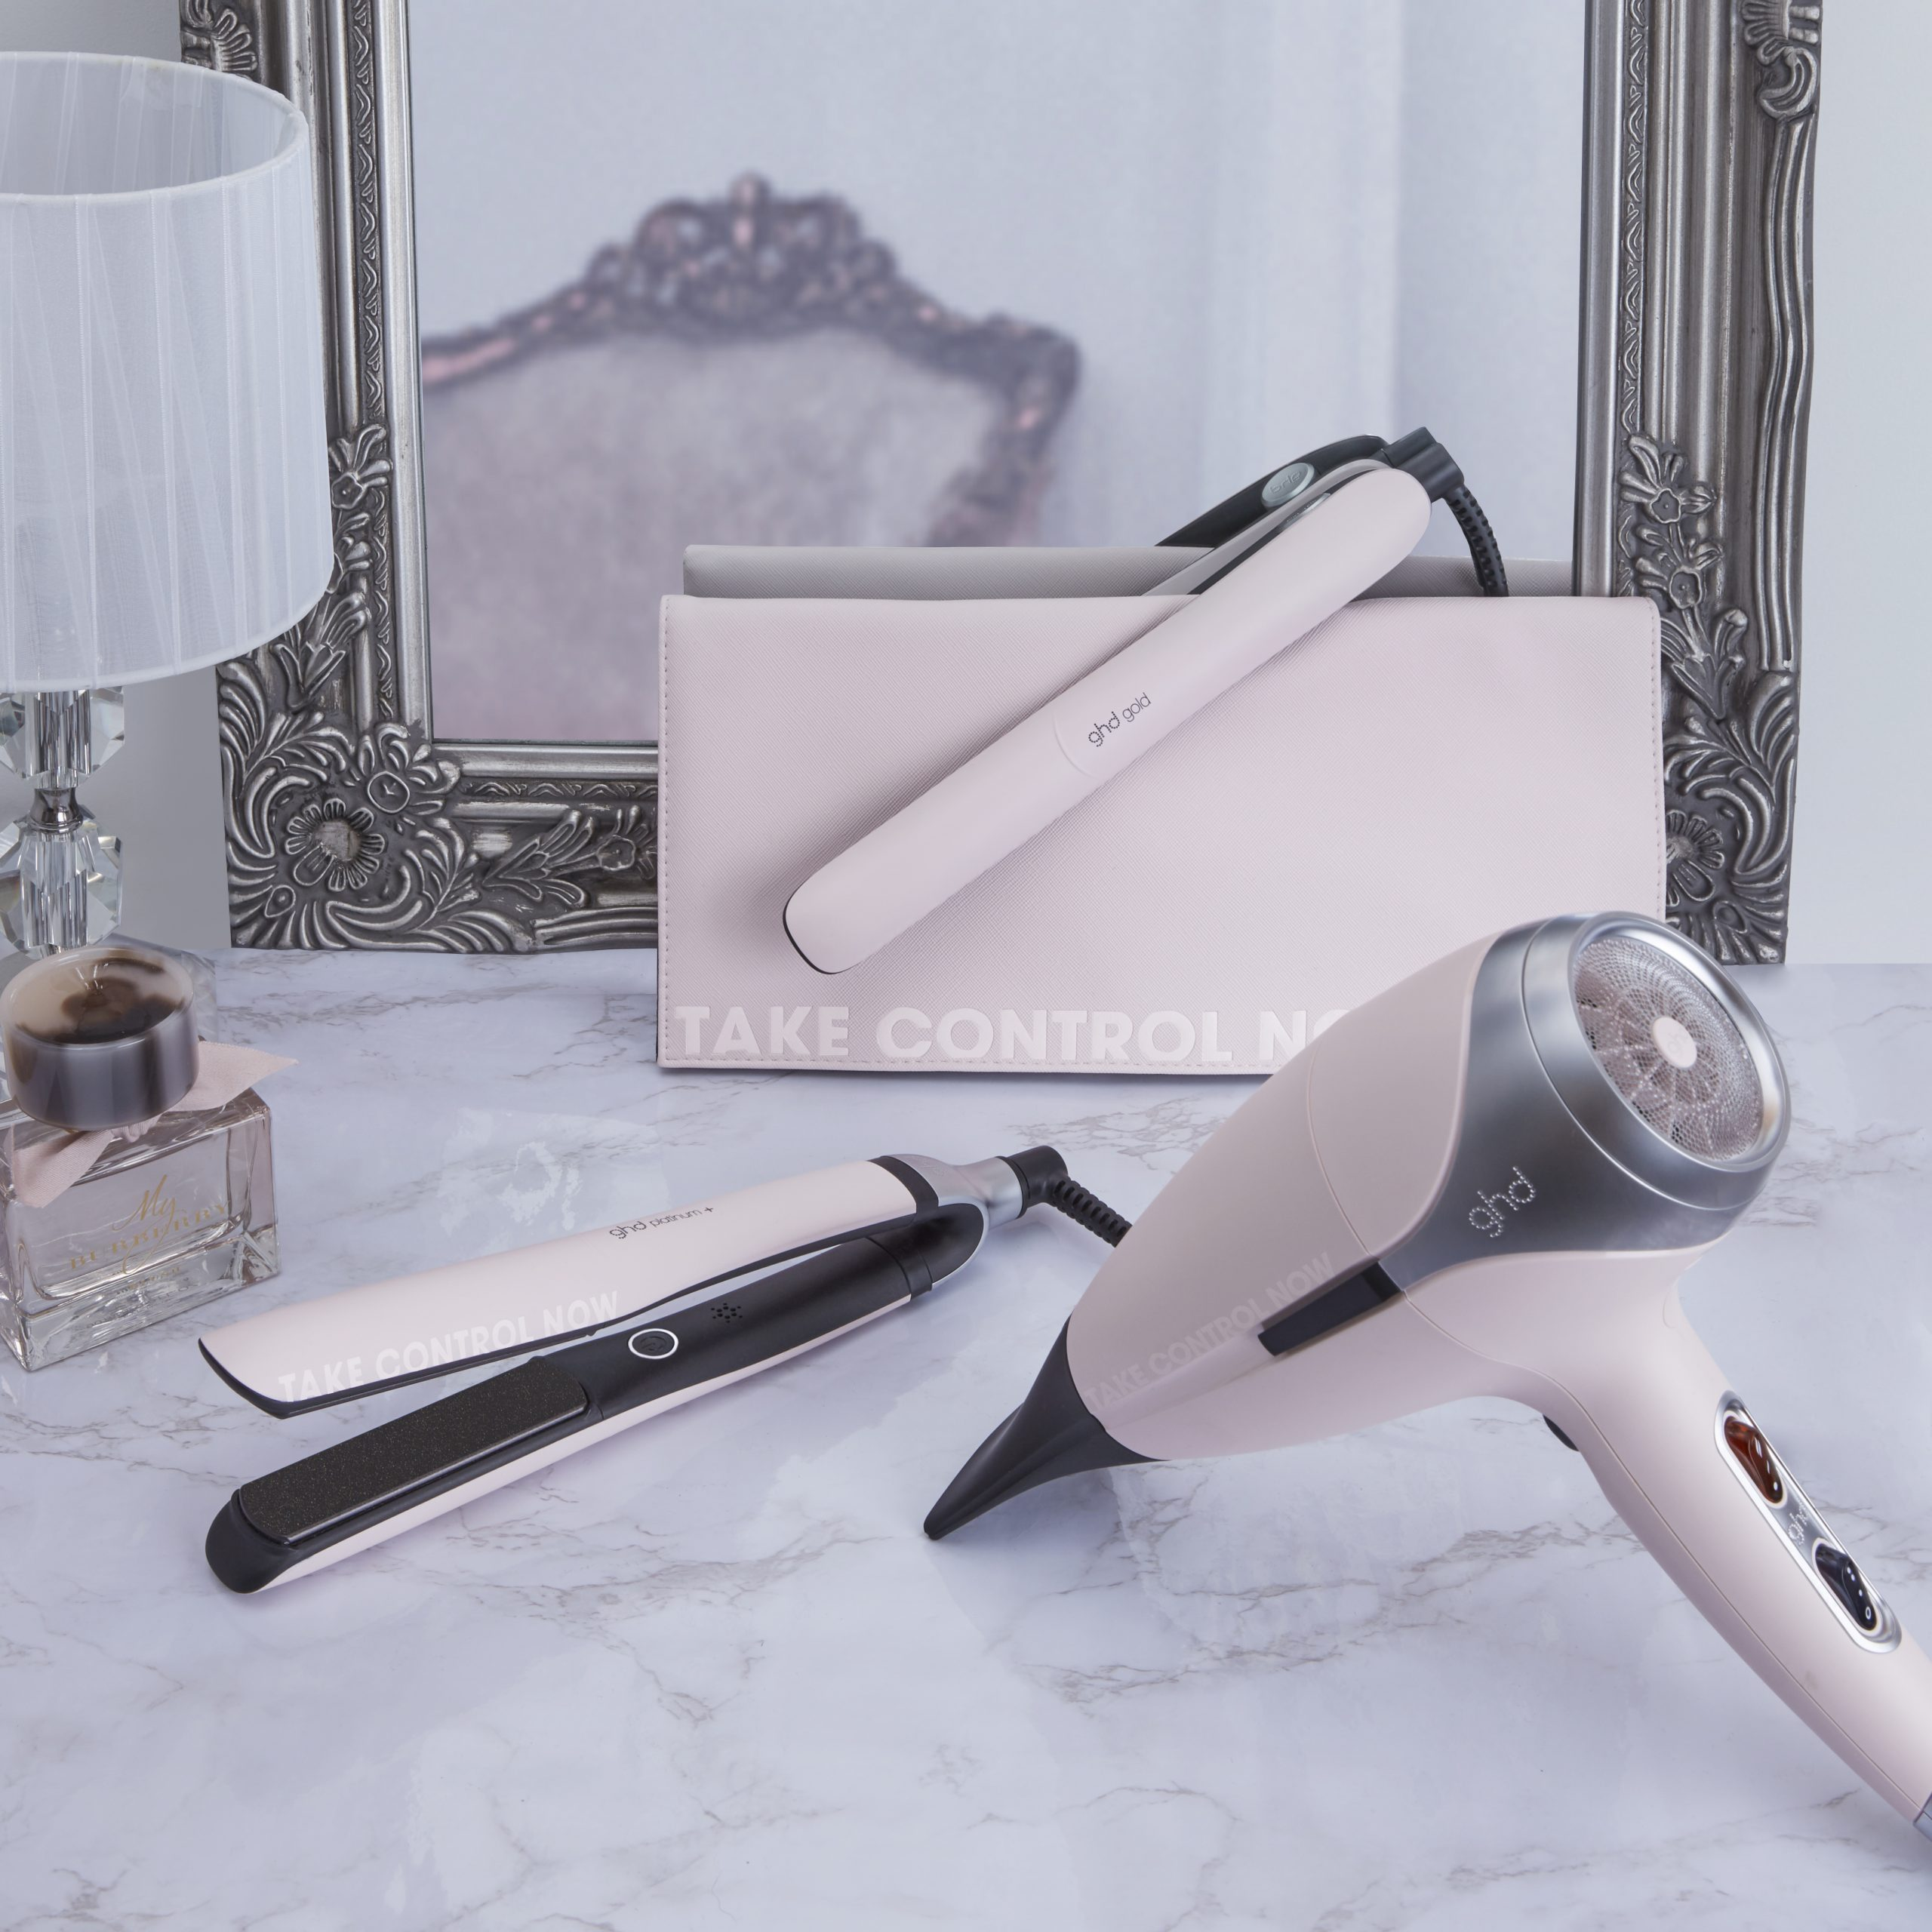 ghd Pink_group image_Campaign Imagery